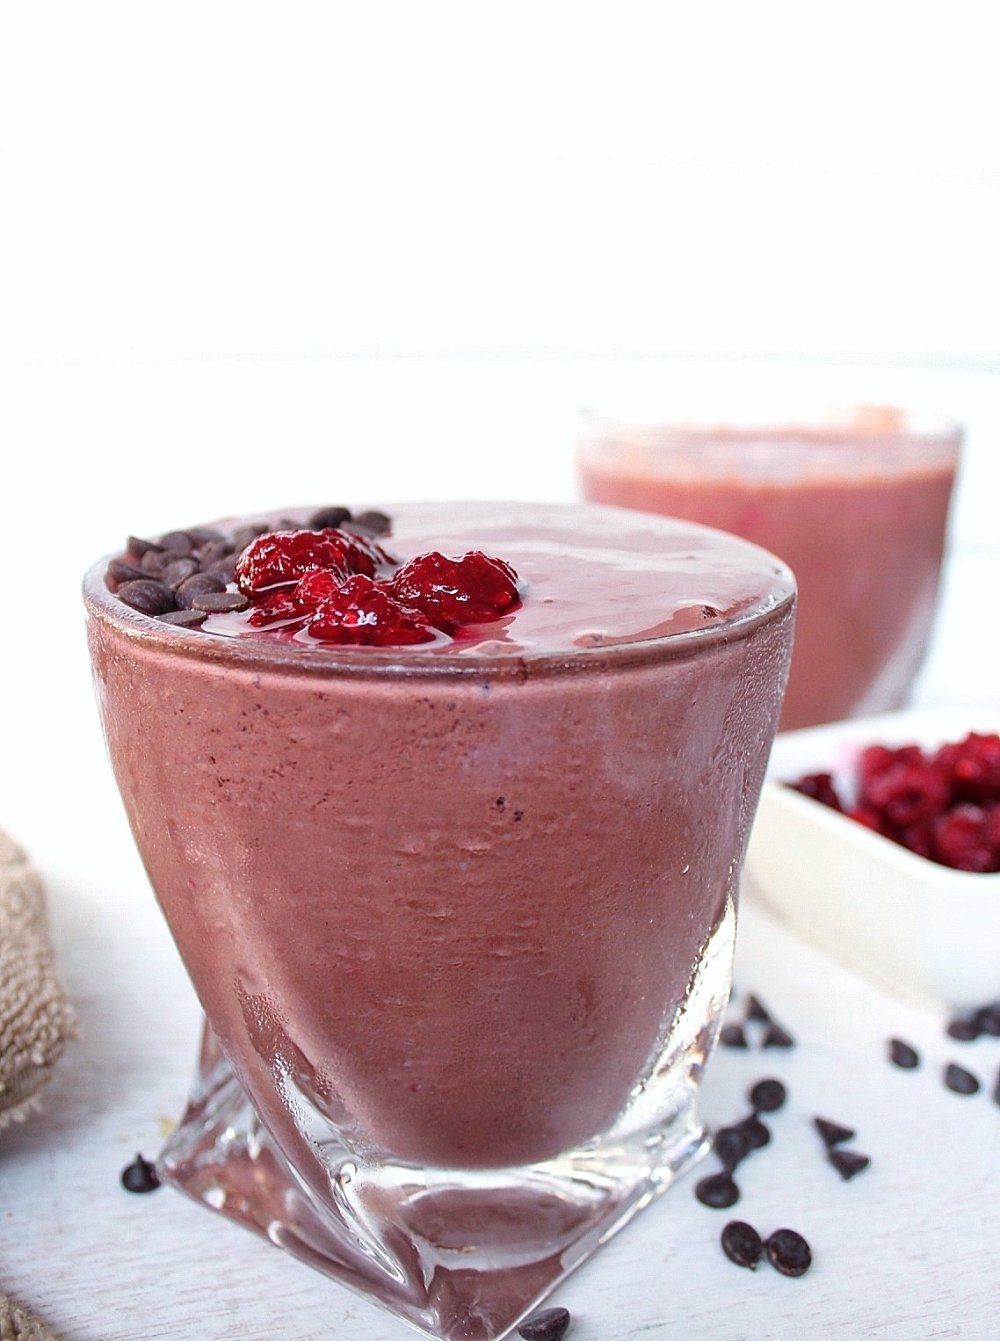 Raspberry chocolate smoothie topped with chocolate chips and raspberries